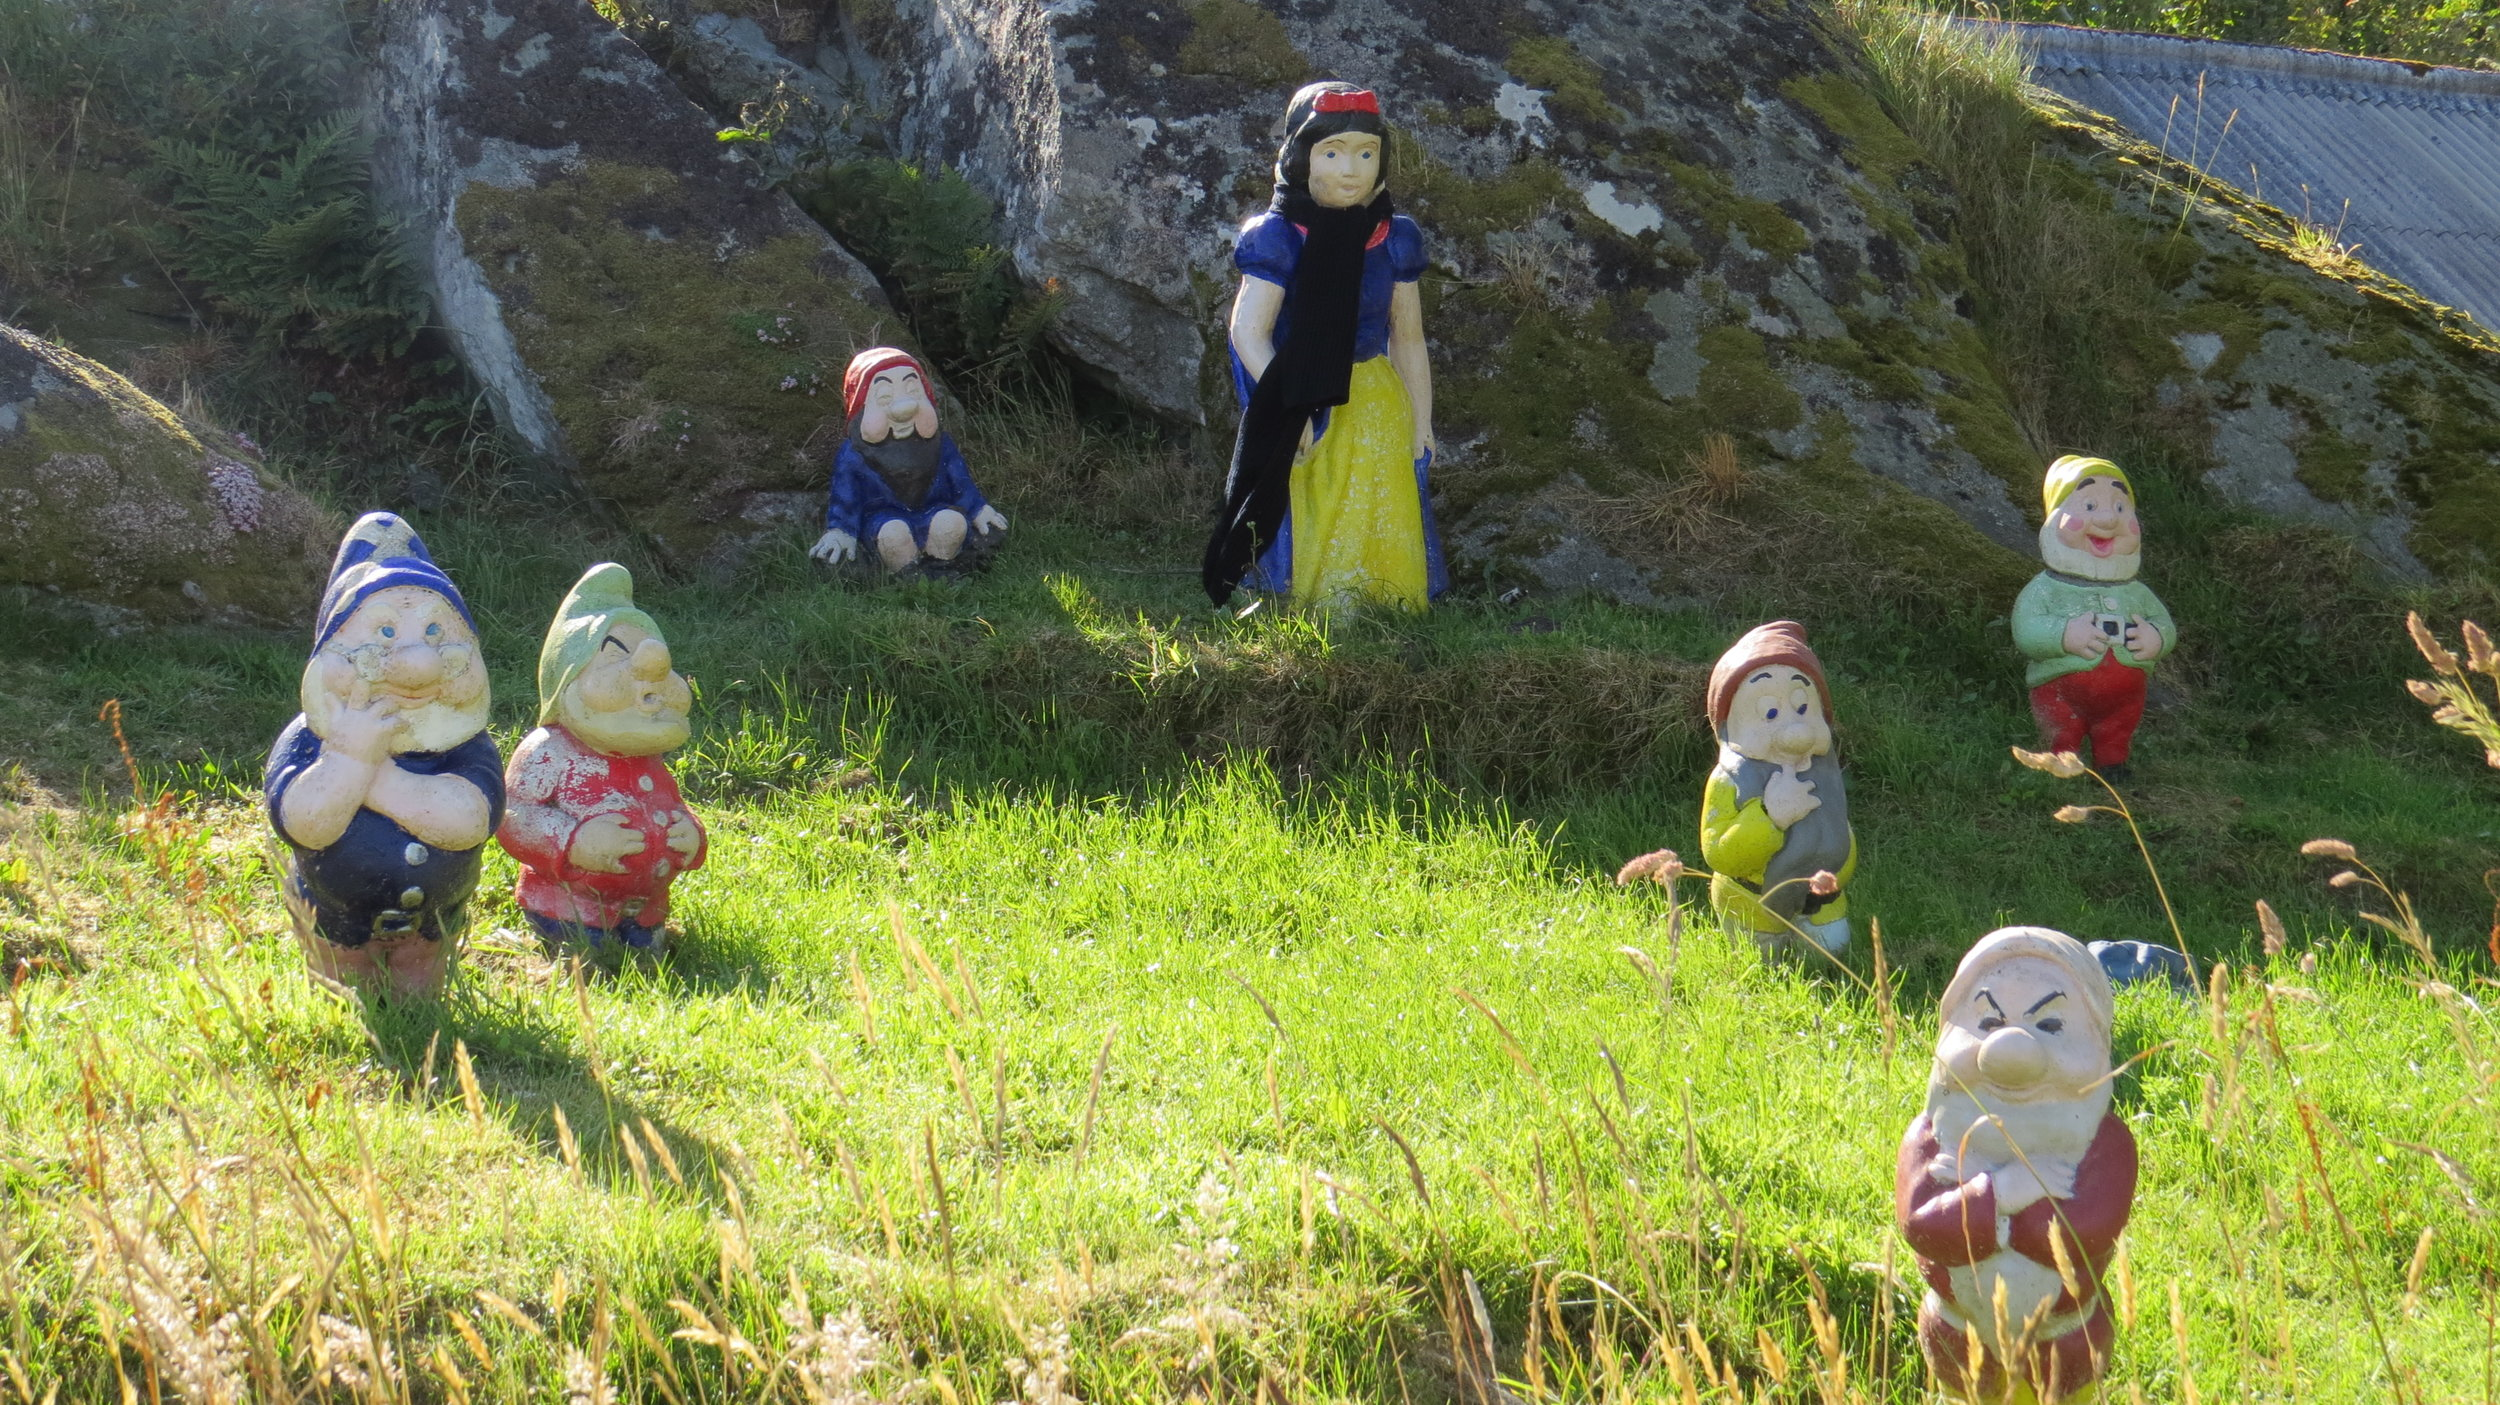 Snowwhite and the 7 Dwarfs